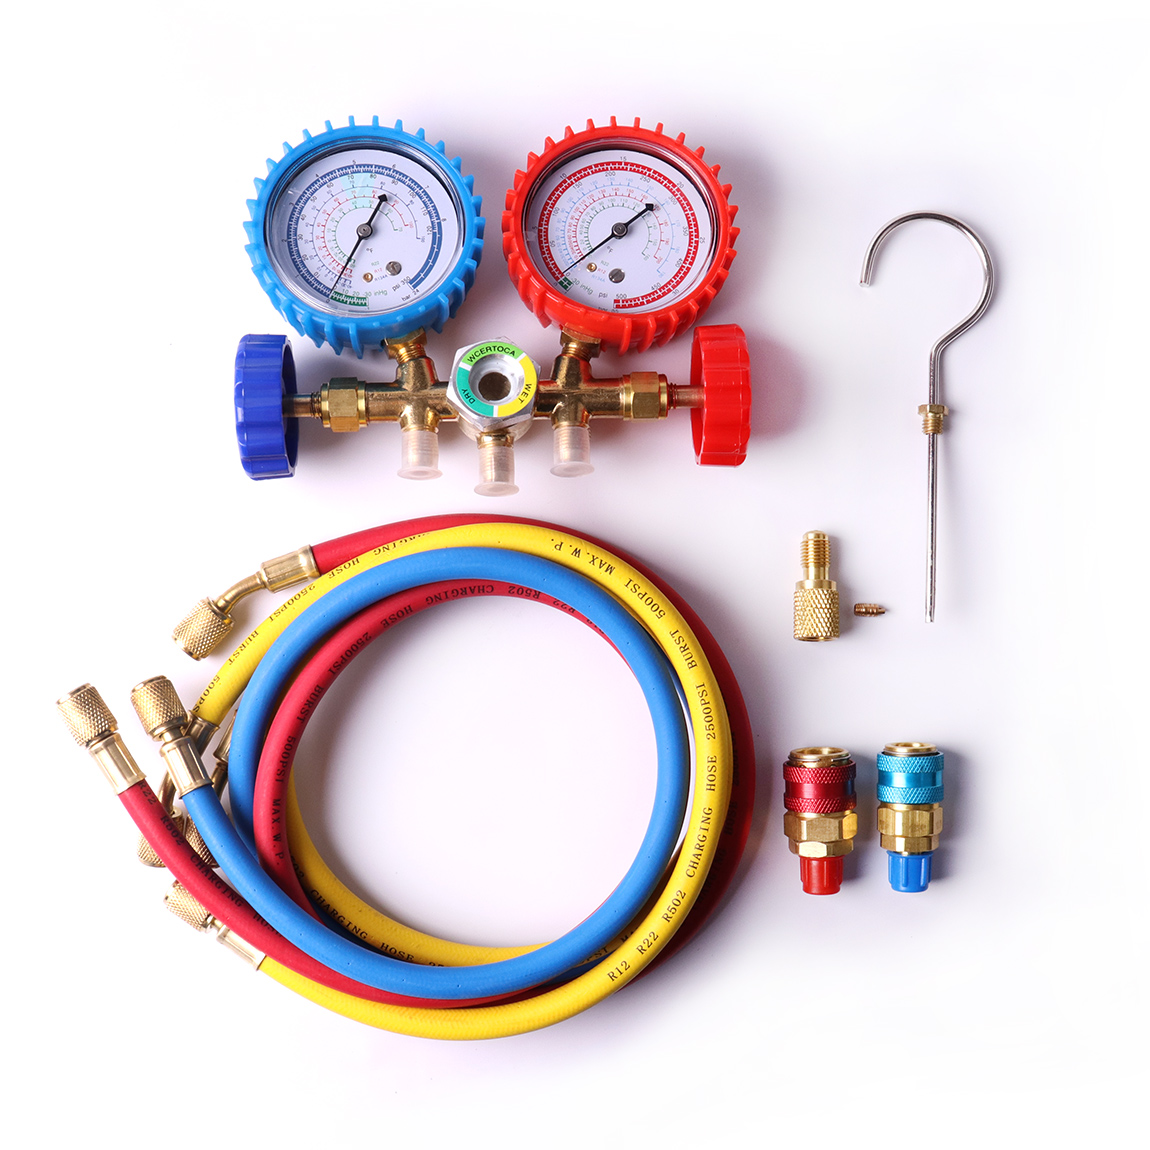 New Air Conditioning Red Blue H-L R134 Quick Couplers R12 R22 R502 and R134a A/C Manifold Brass Gauge Set with 3 Charging Hoses ударная дрель einhell bt id 650 e